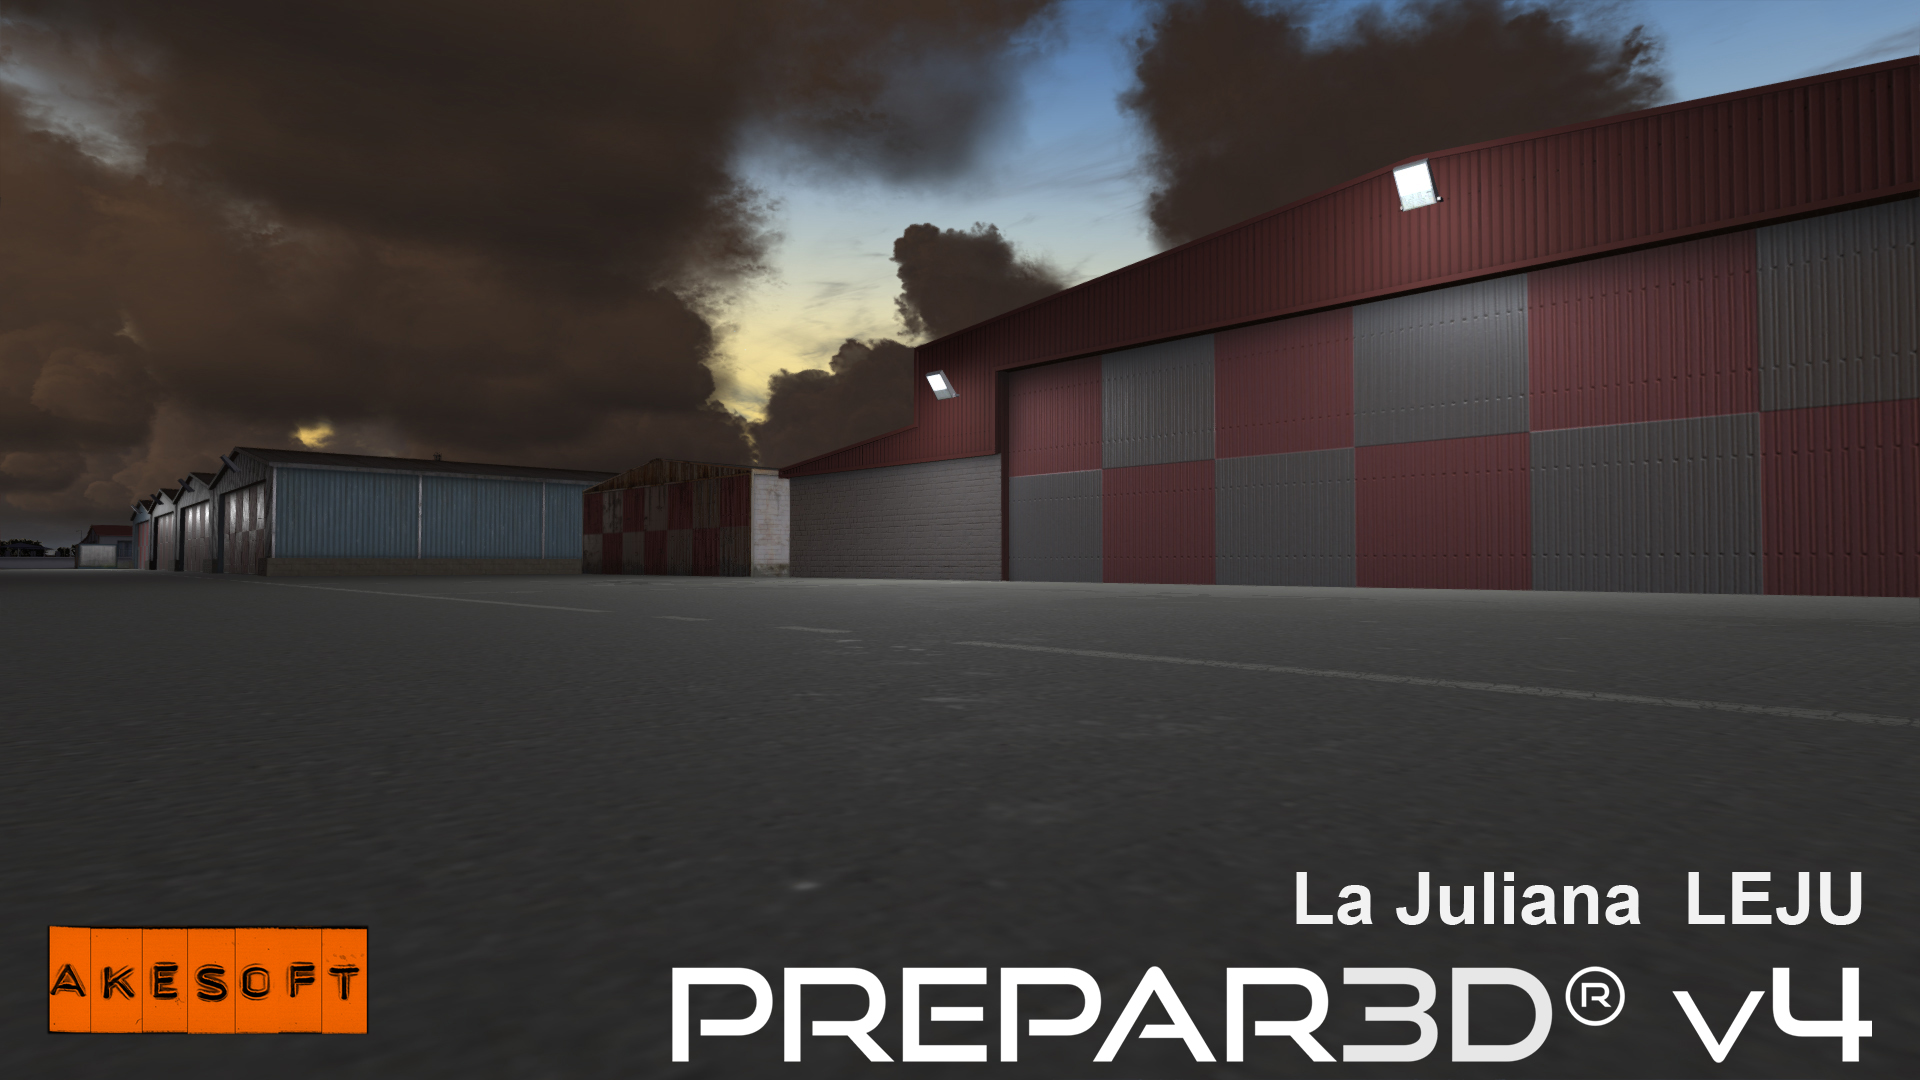 AKESOFT - LA JULIANA LEJU P3DV4 AND V5